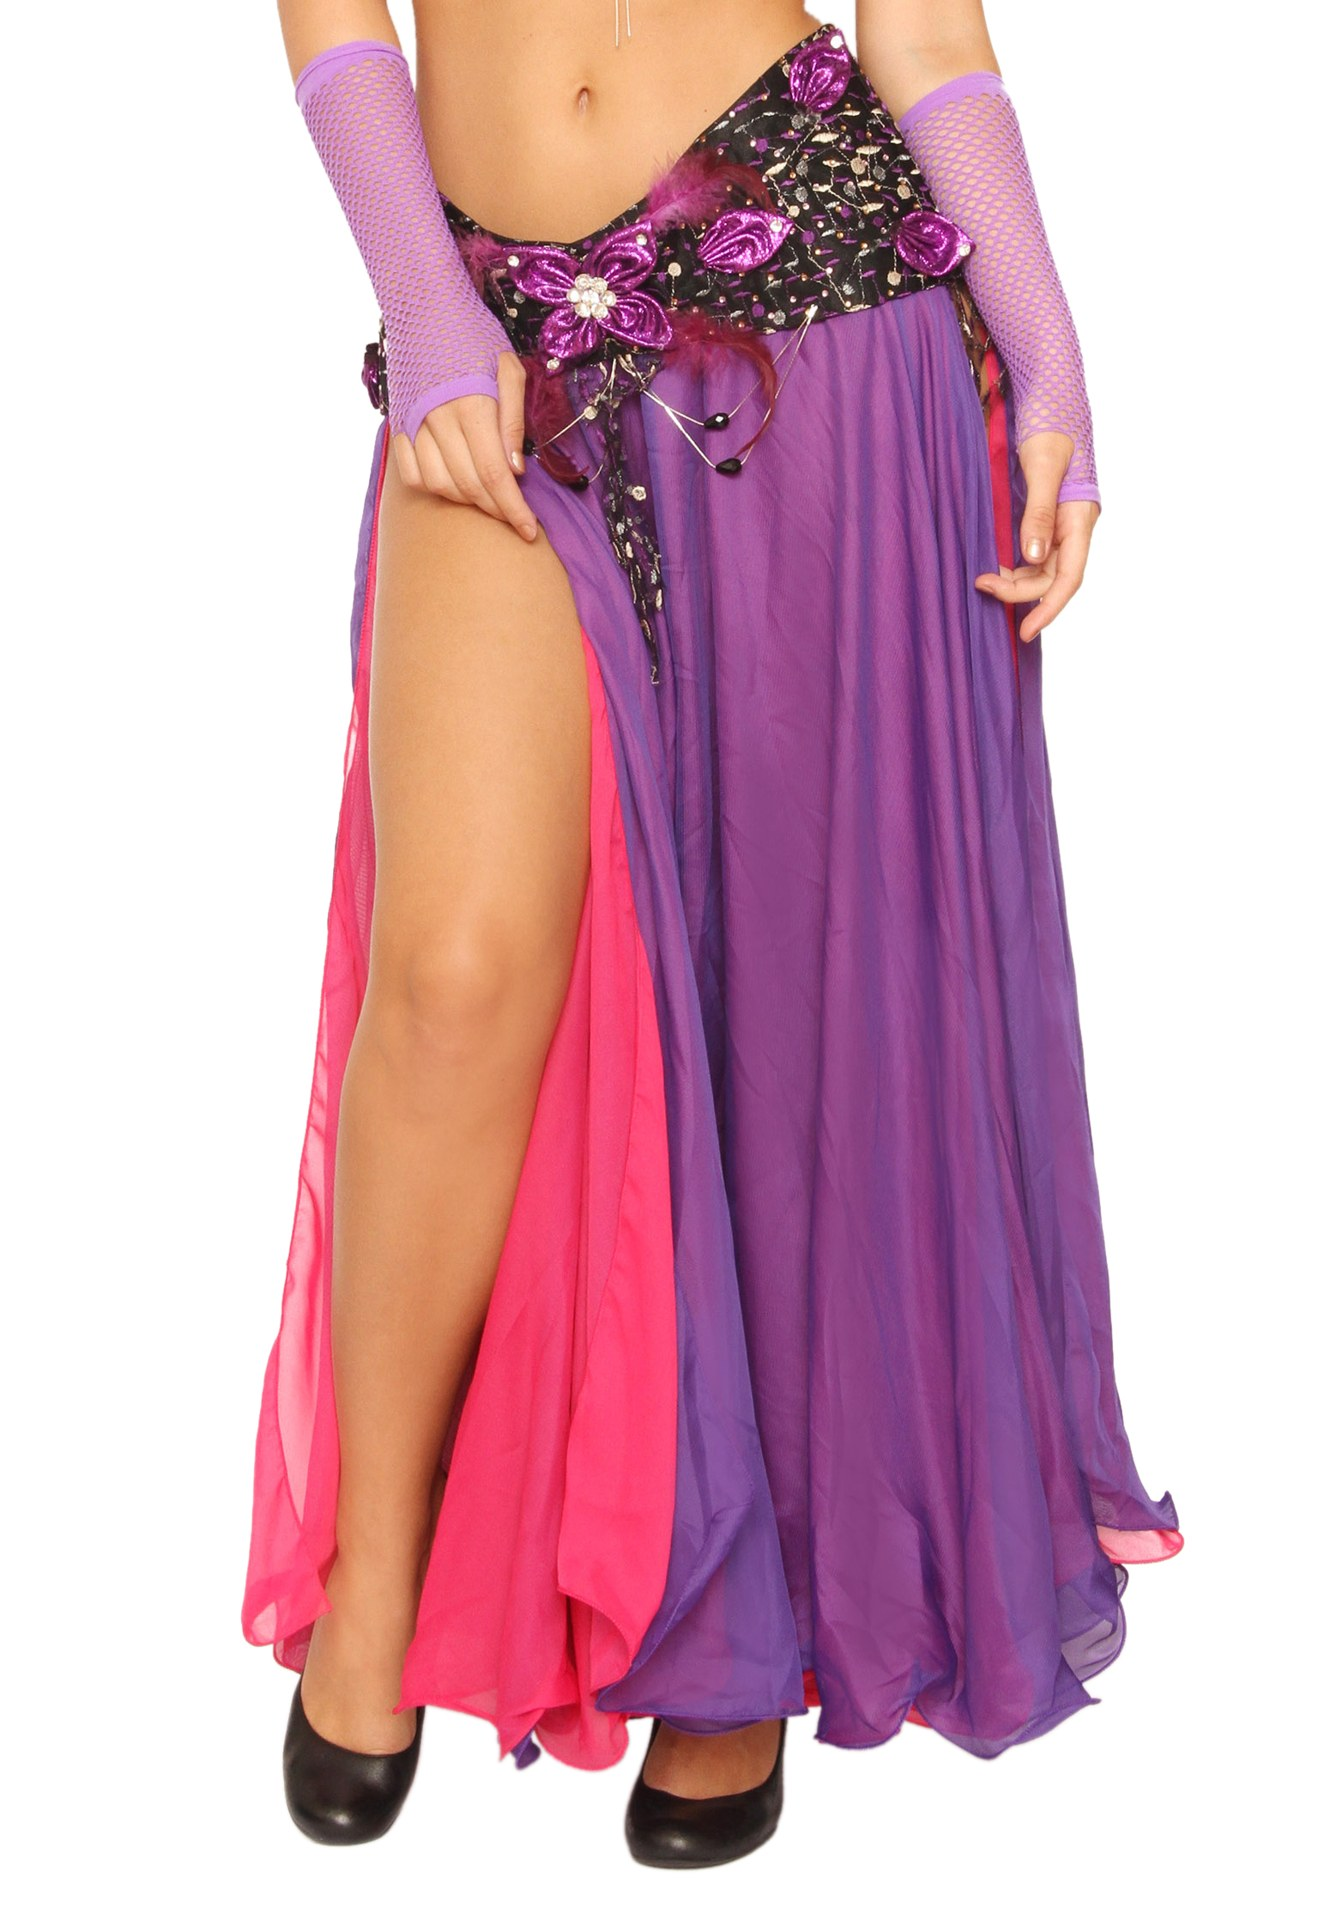 Belly Dancer Two Color Rayon Skirt with Flairs